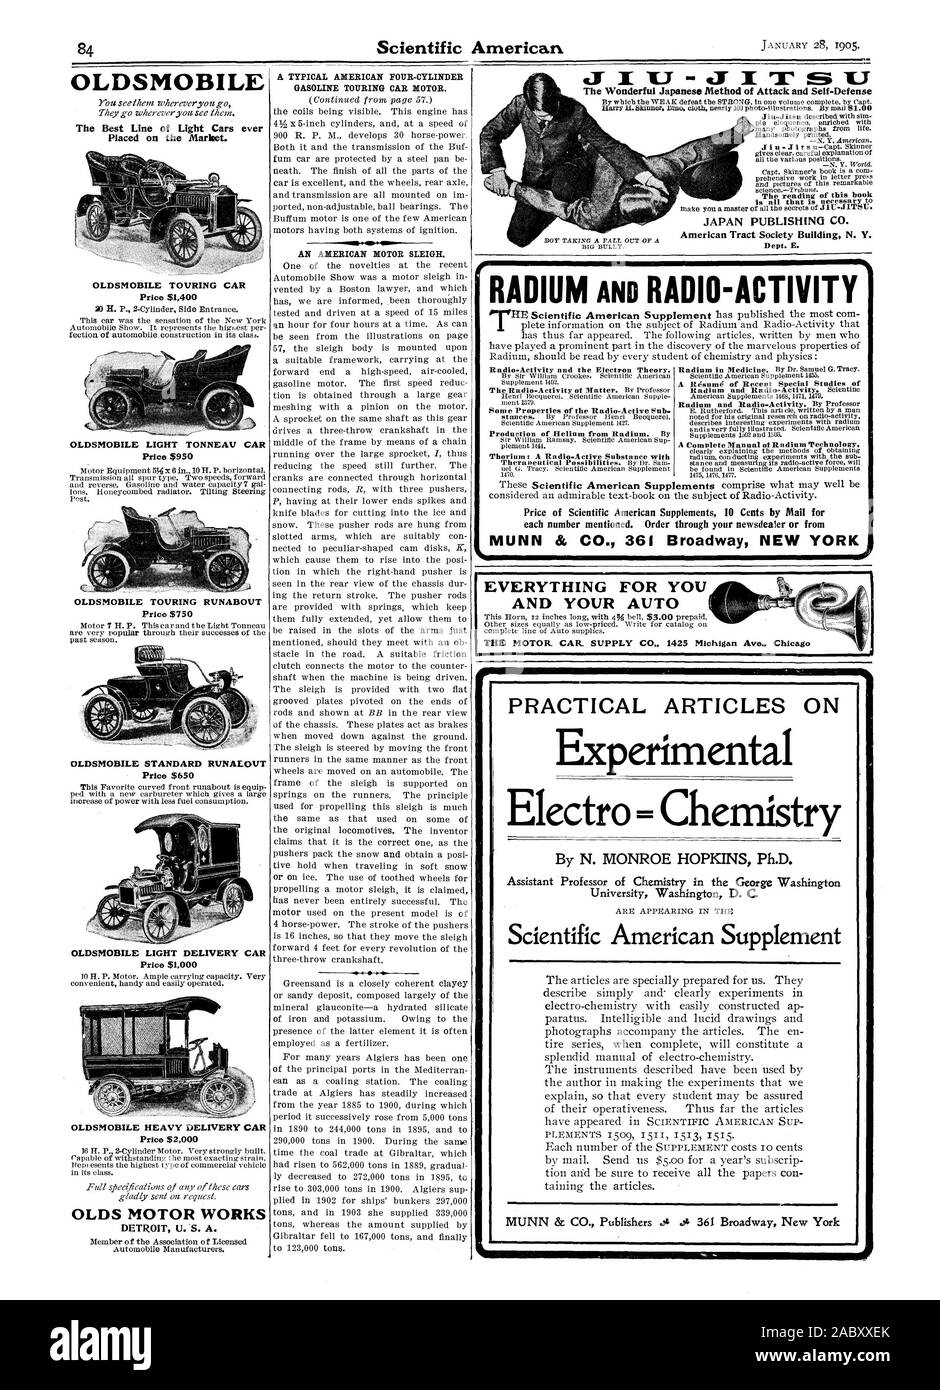 The Wonderful Japanese Method of Attack and Self-Defense JAPAN PUBLISHING CO. Radio-Activity and the Electron Theory. Production of Helium from Radium. By Thorium: A Radio-Active Substance with A R4sum4 of Recent Special Studies of each number mentioned. Order through your newsdealer or from MUNN & CO. 361 Broadway NEW YORK EVERYTHING FOR YOU AND YOUR AUT Ave. Chicag PRACTICAL ARTICLES ON Experimental Electro = Chemistry By N. MONROE HOPKINS Ph.D. Scientific American Supplement OLDSMOBILE The Best Line of Light Cars ever Placed on the Market. OLDSMOBILE TOURING CAR Price $1400 OLDSMOBILE LIGHT Stock Photo